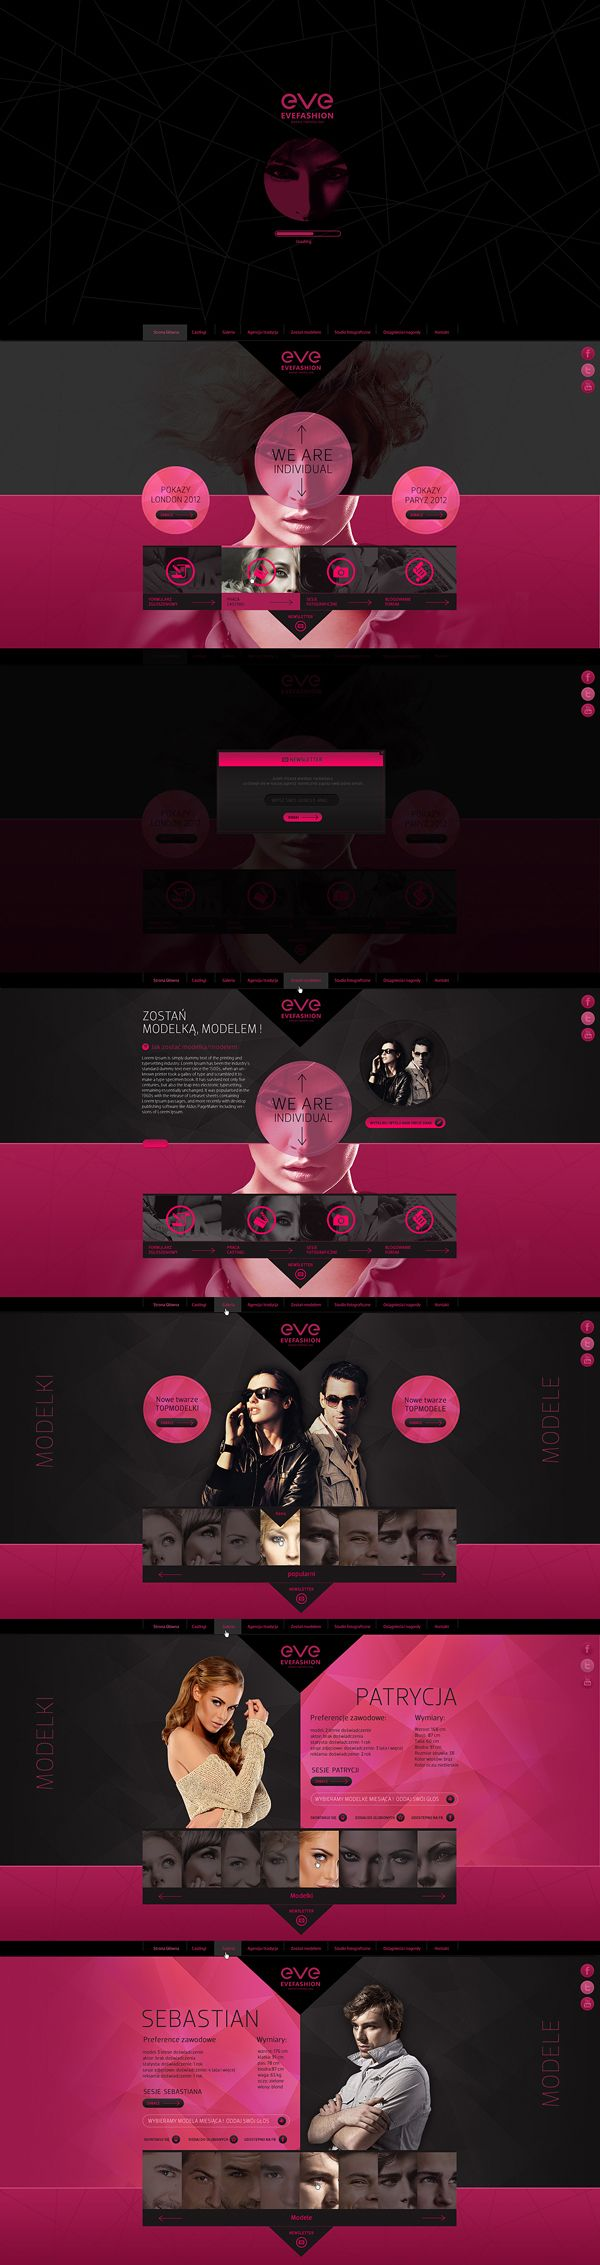 網頁layout,黑粉紅襯色,垂直排列 evefashion by Piotr Miśkiewicz, via Behance